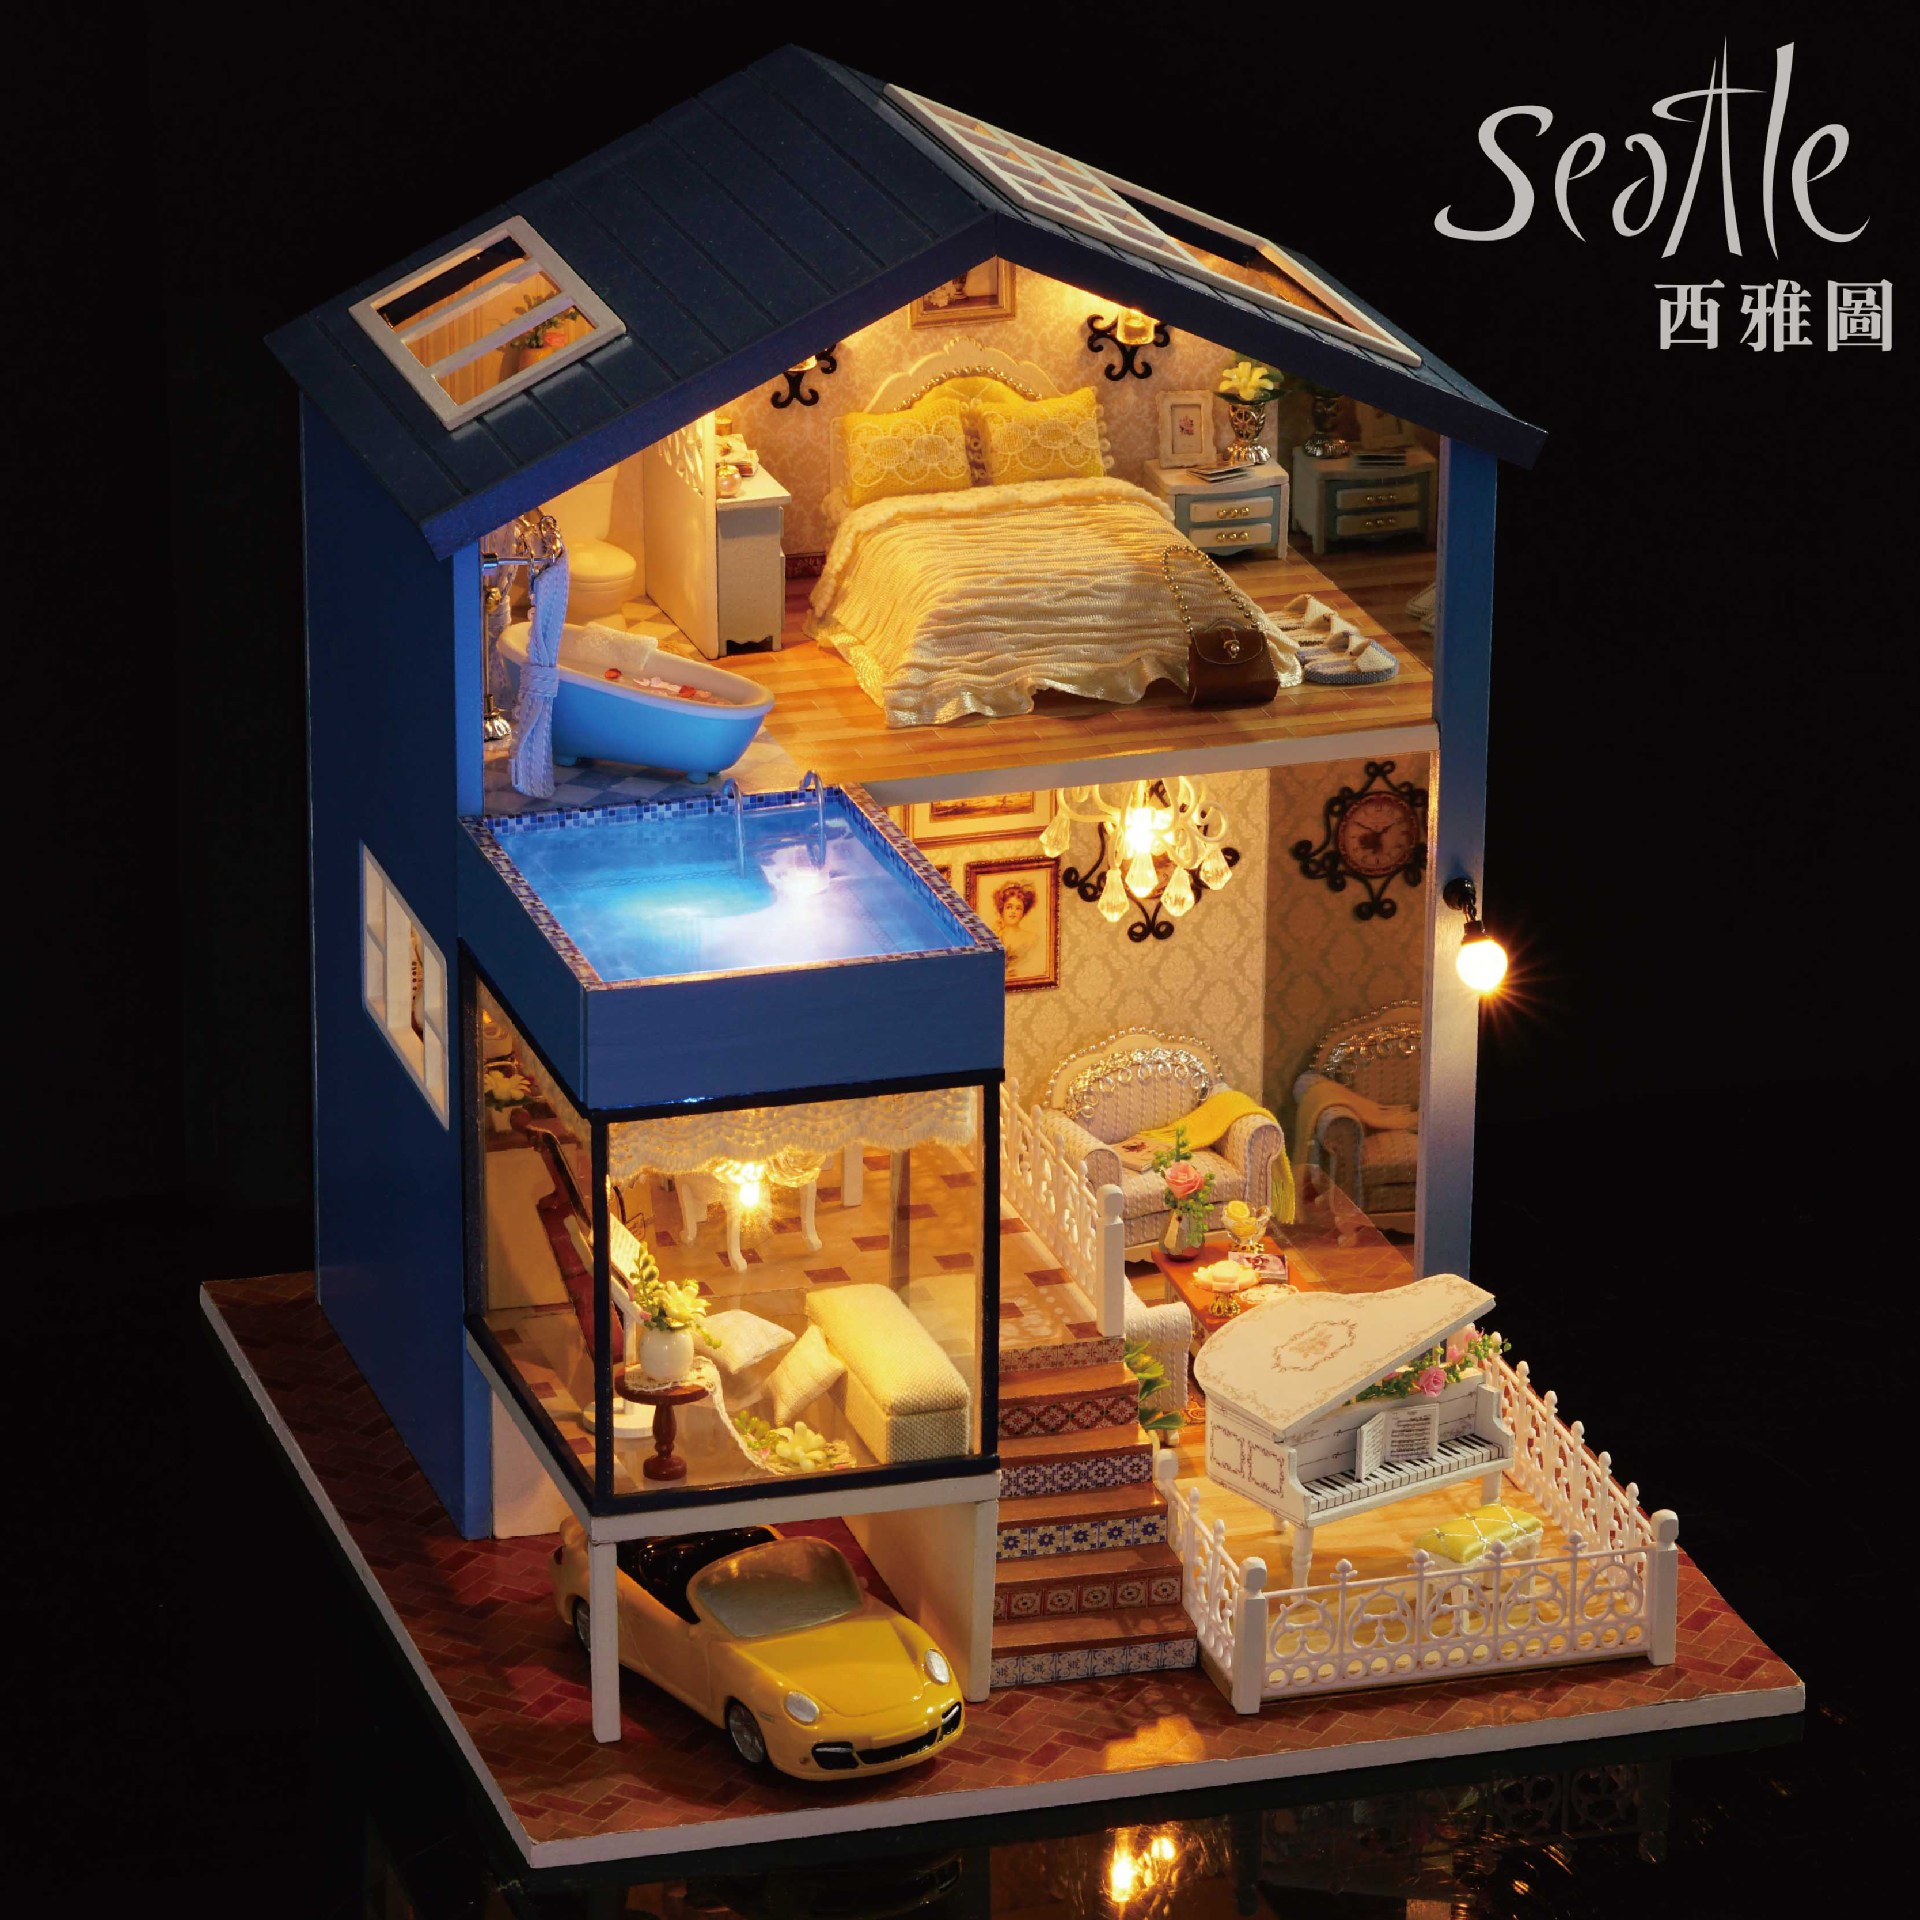 DIY Hut Seattle Hand-made Small House Assembled Toys Architecture Model Birthday Gift Women's